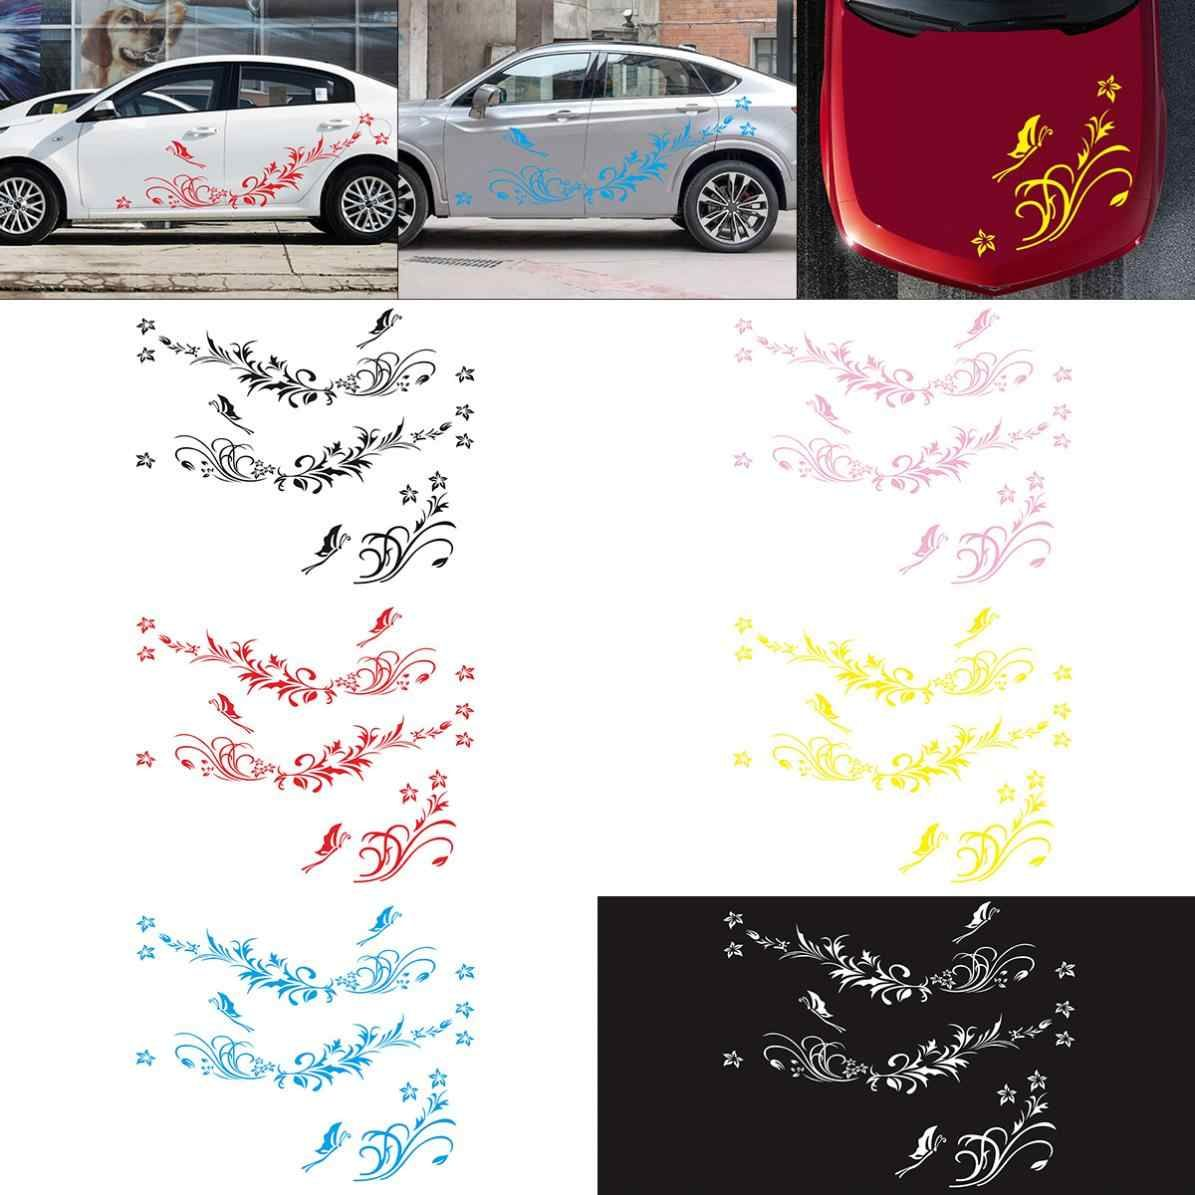 Waterproof 1pair Car Modifield Decal Vinyl Stickers Natural Flower Vine Dragonfly For Whole Car Body Dragonfly Wall Sticker Sticker Shopdragonfly Rotary Tattoo Wall Sticker Flowering Vines Vinyl Sticker [ 1195 x 1195 Pixel ]